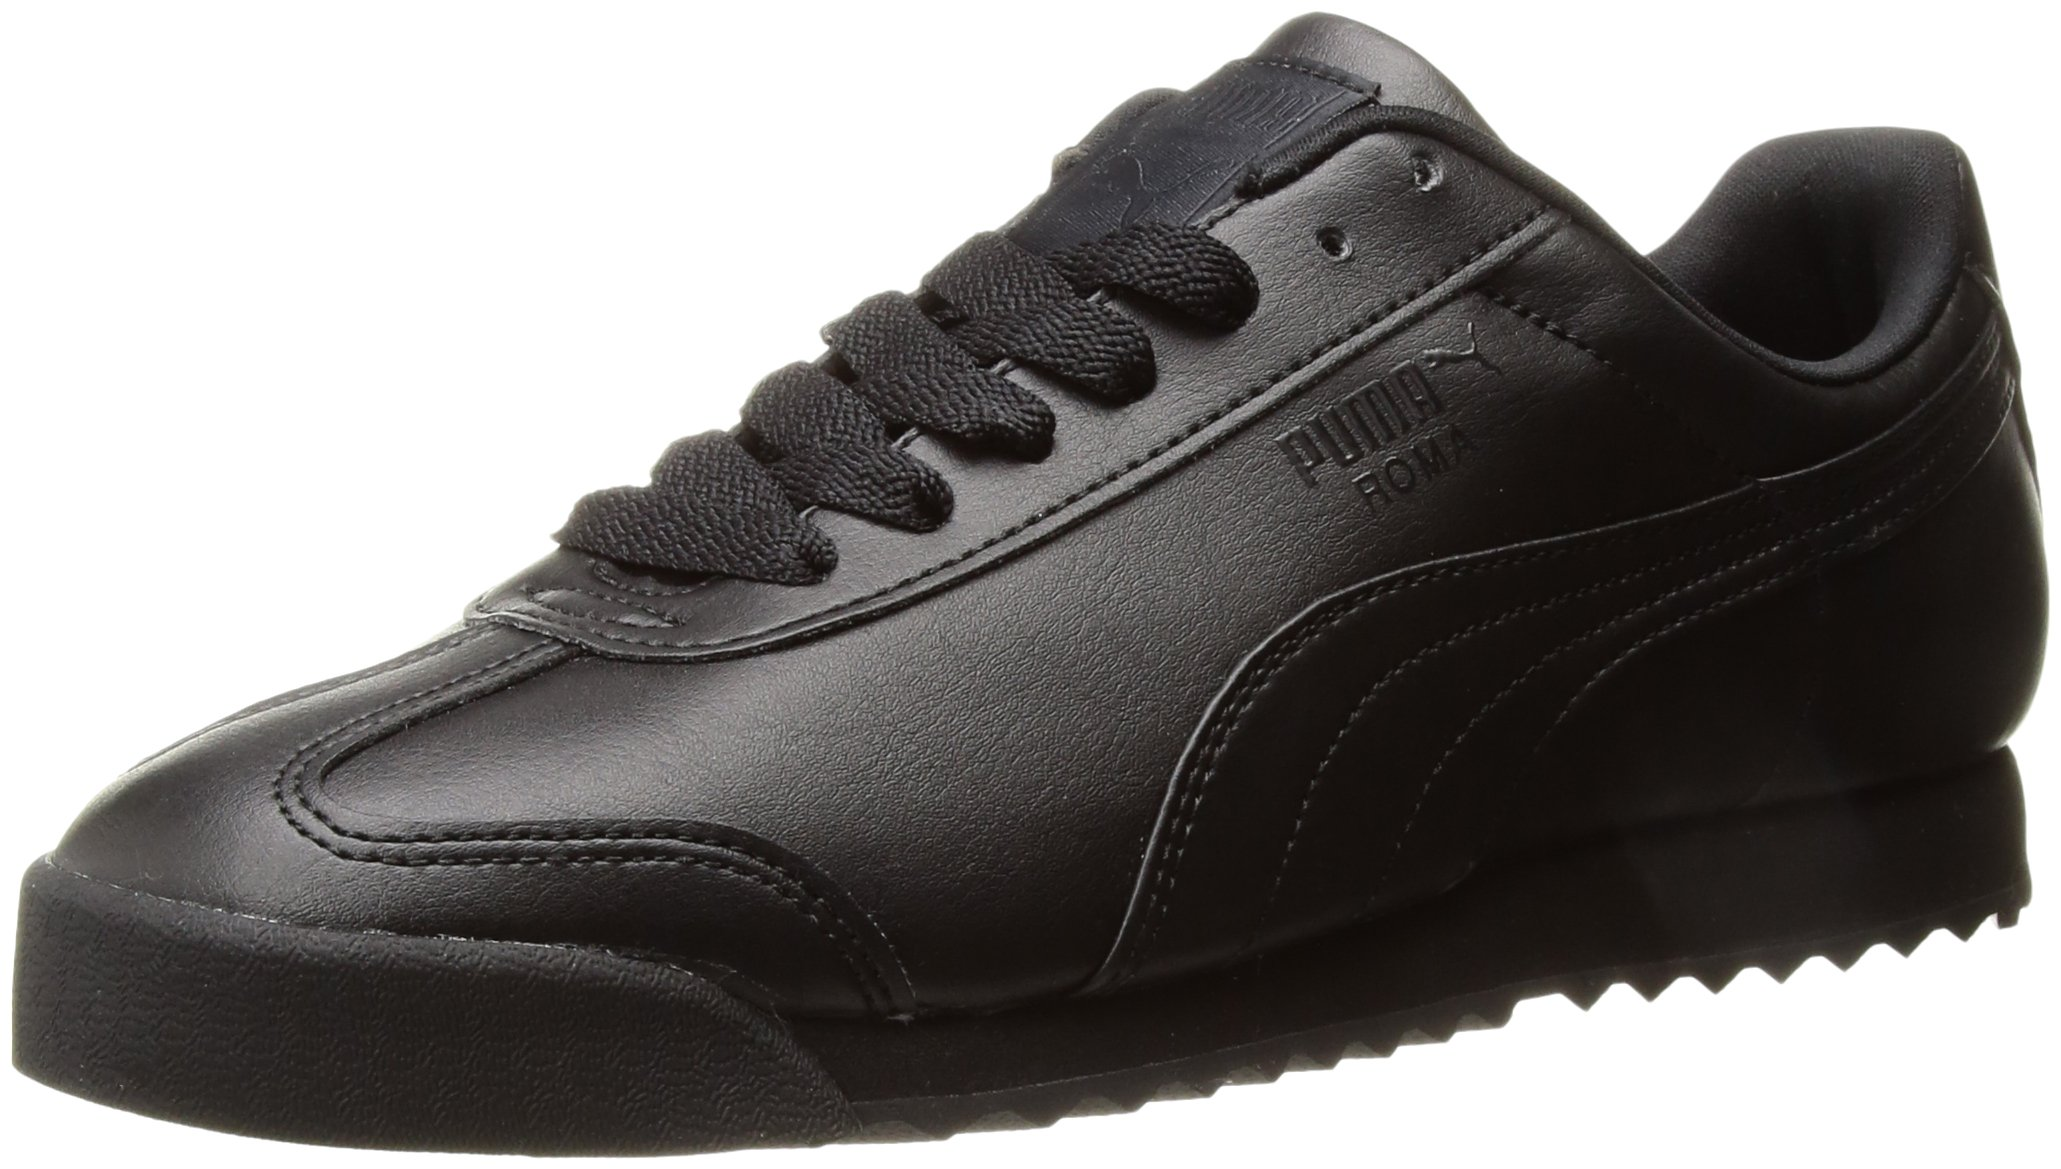 PUMA Men's Roma Basic Fashion Sneaker, Black/Black - 11 D(M) US by PUMA